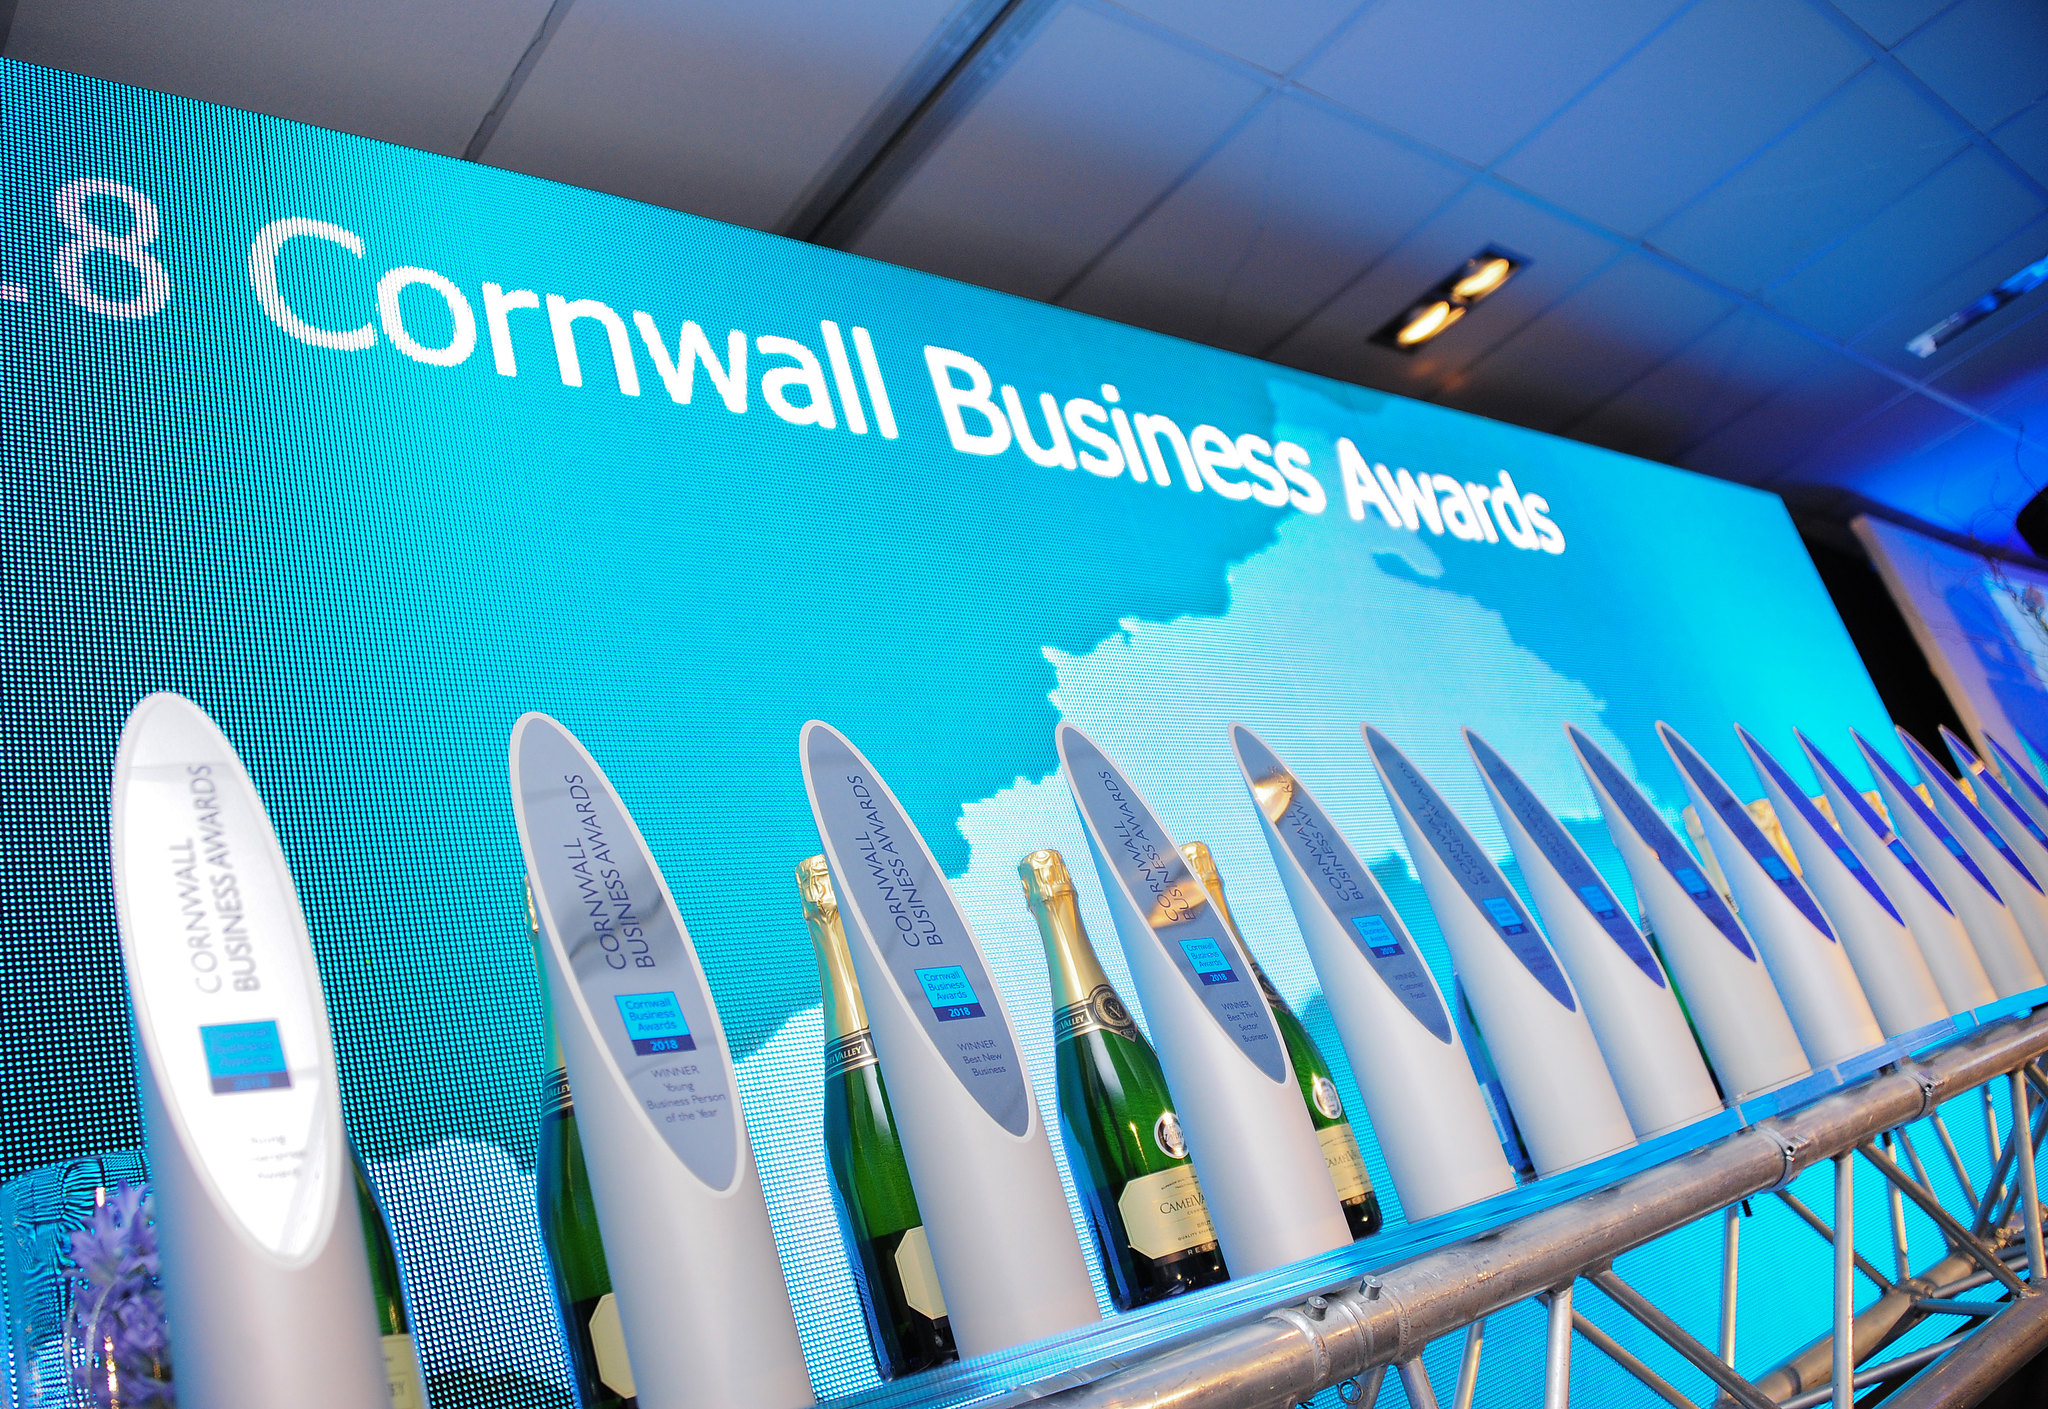 Cornwall Business Awards Trophies